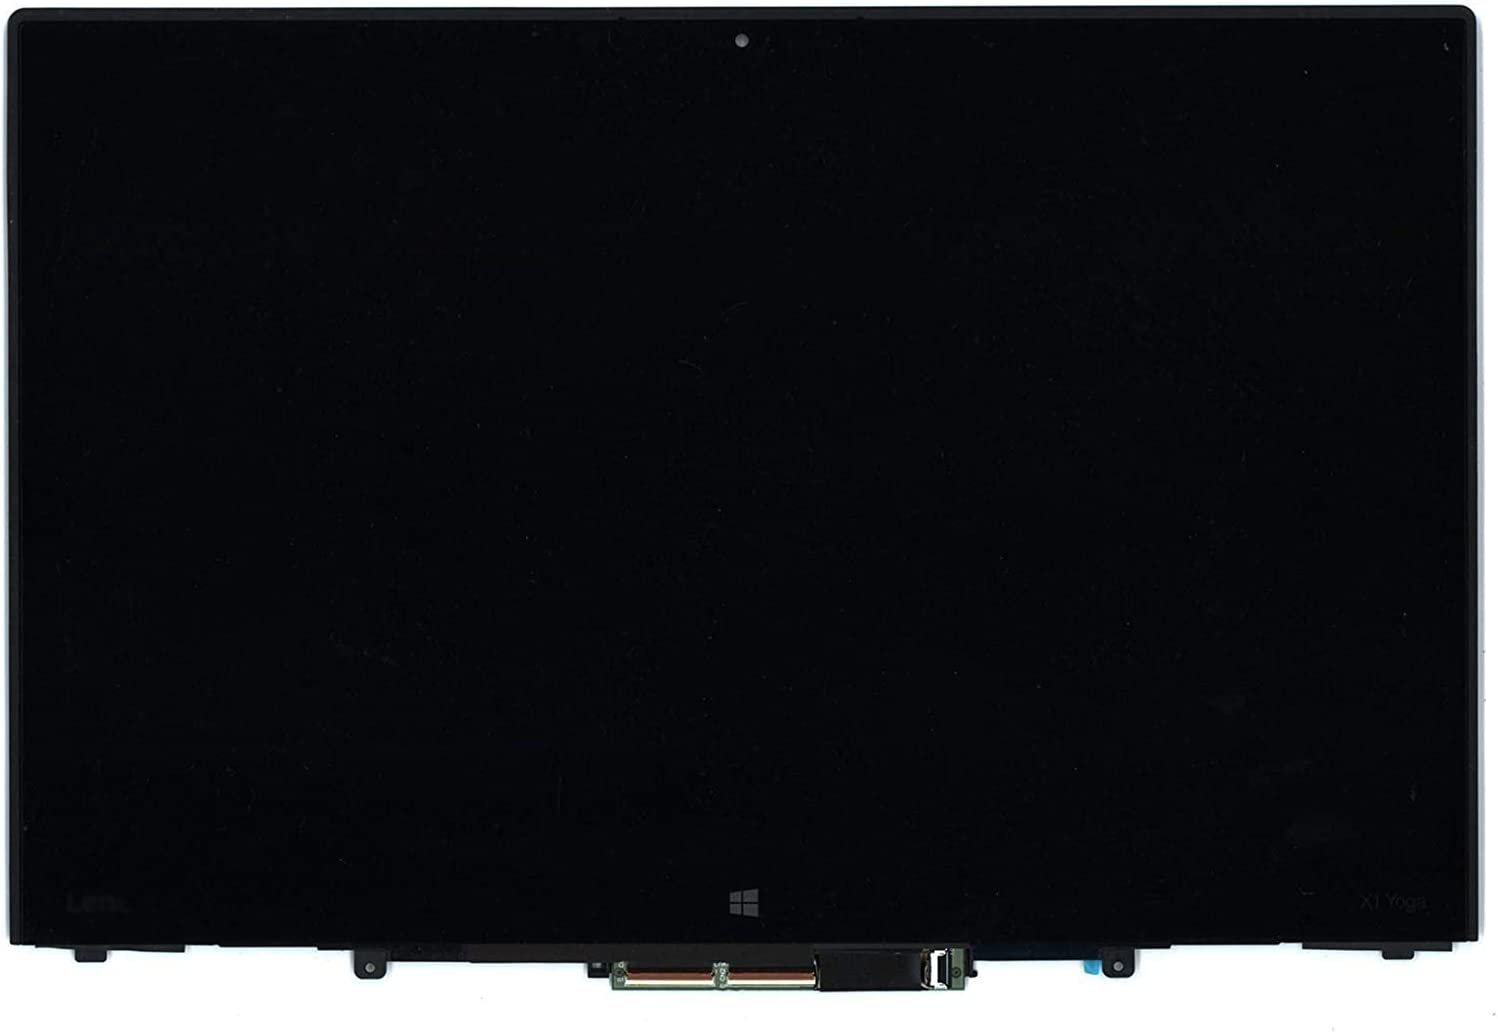 New Replacement 14 inch LCD LED Touch Screen Display with Touch Control Board and Bezel Frame Assembly for Lenovo Thinkpad X1 Yoga 1st Gen FRU:00UR191 WQHD 2560x1440